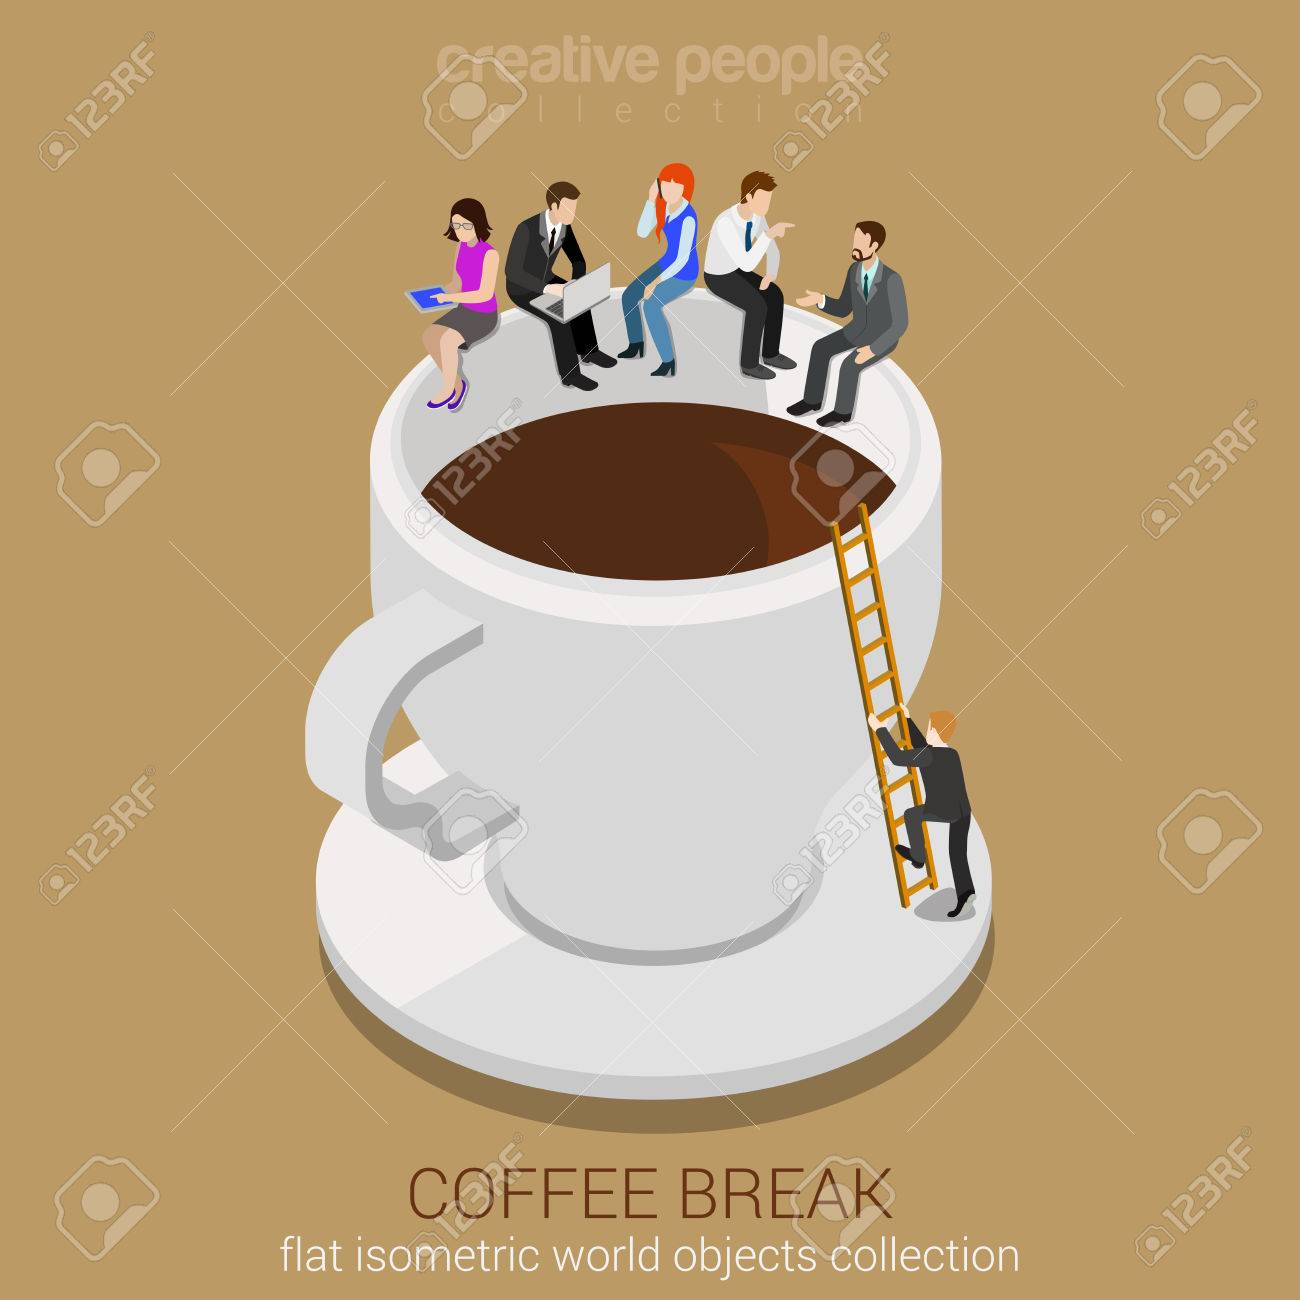 Coffee break concept flat 3d web isometric infographic vector. Business casual businesspeople sitting on huge coffee cup edge. Man climbing up ladder. Creative people collection. - 54626427